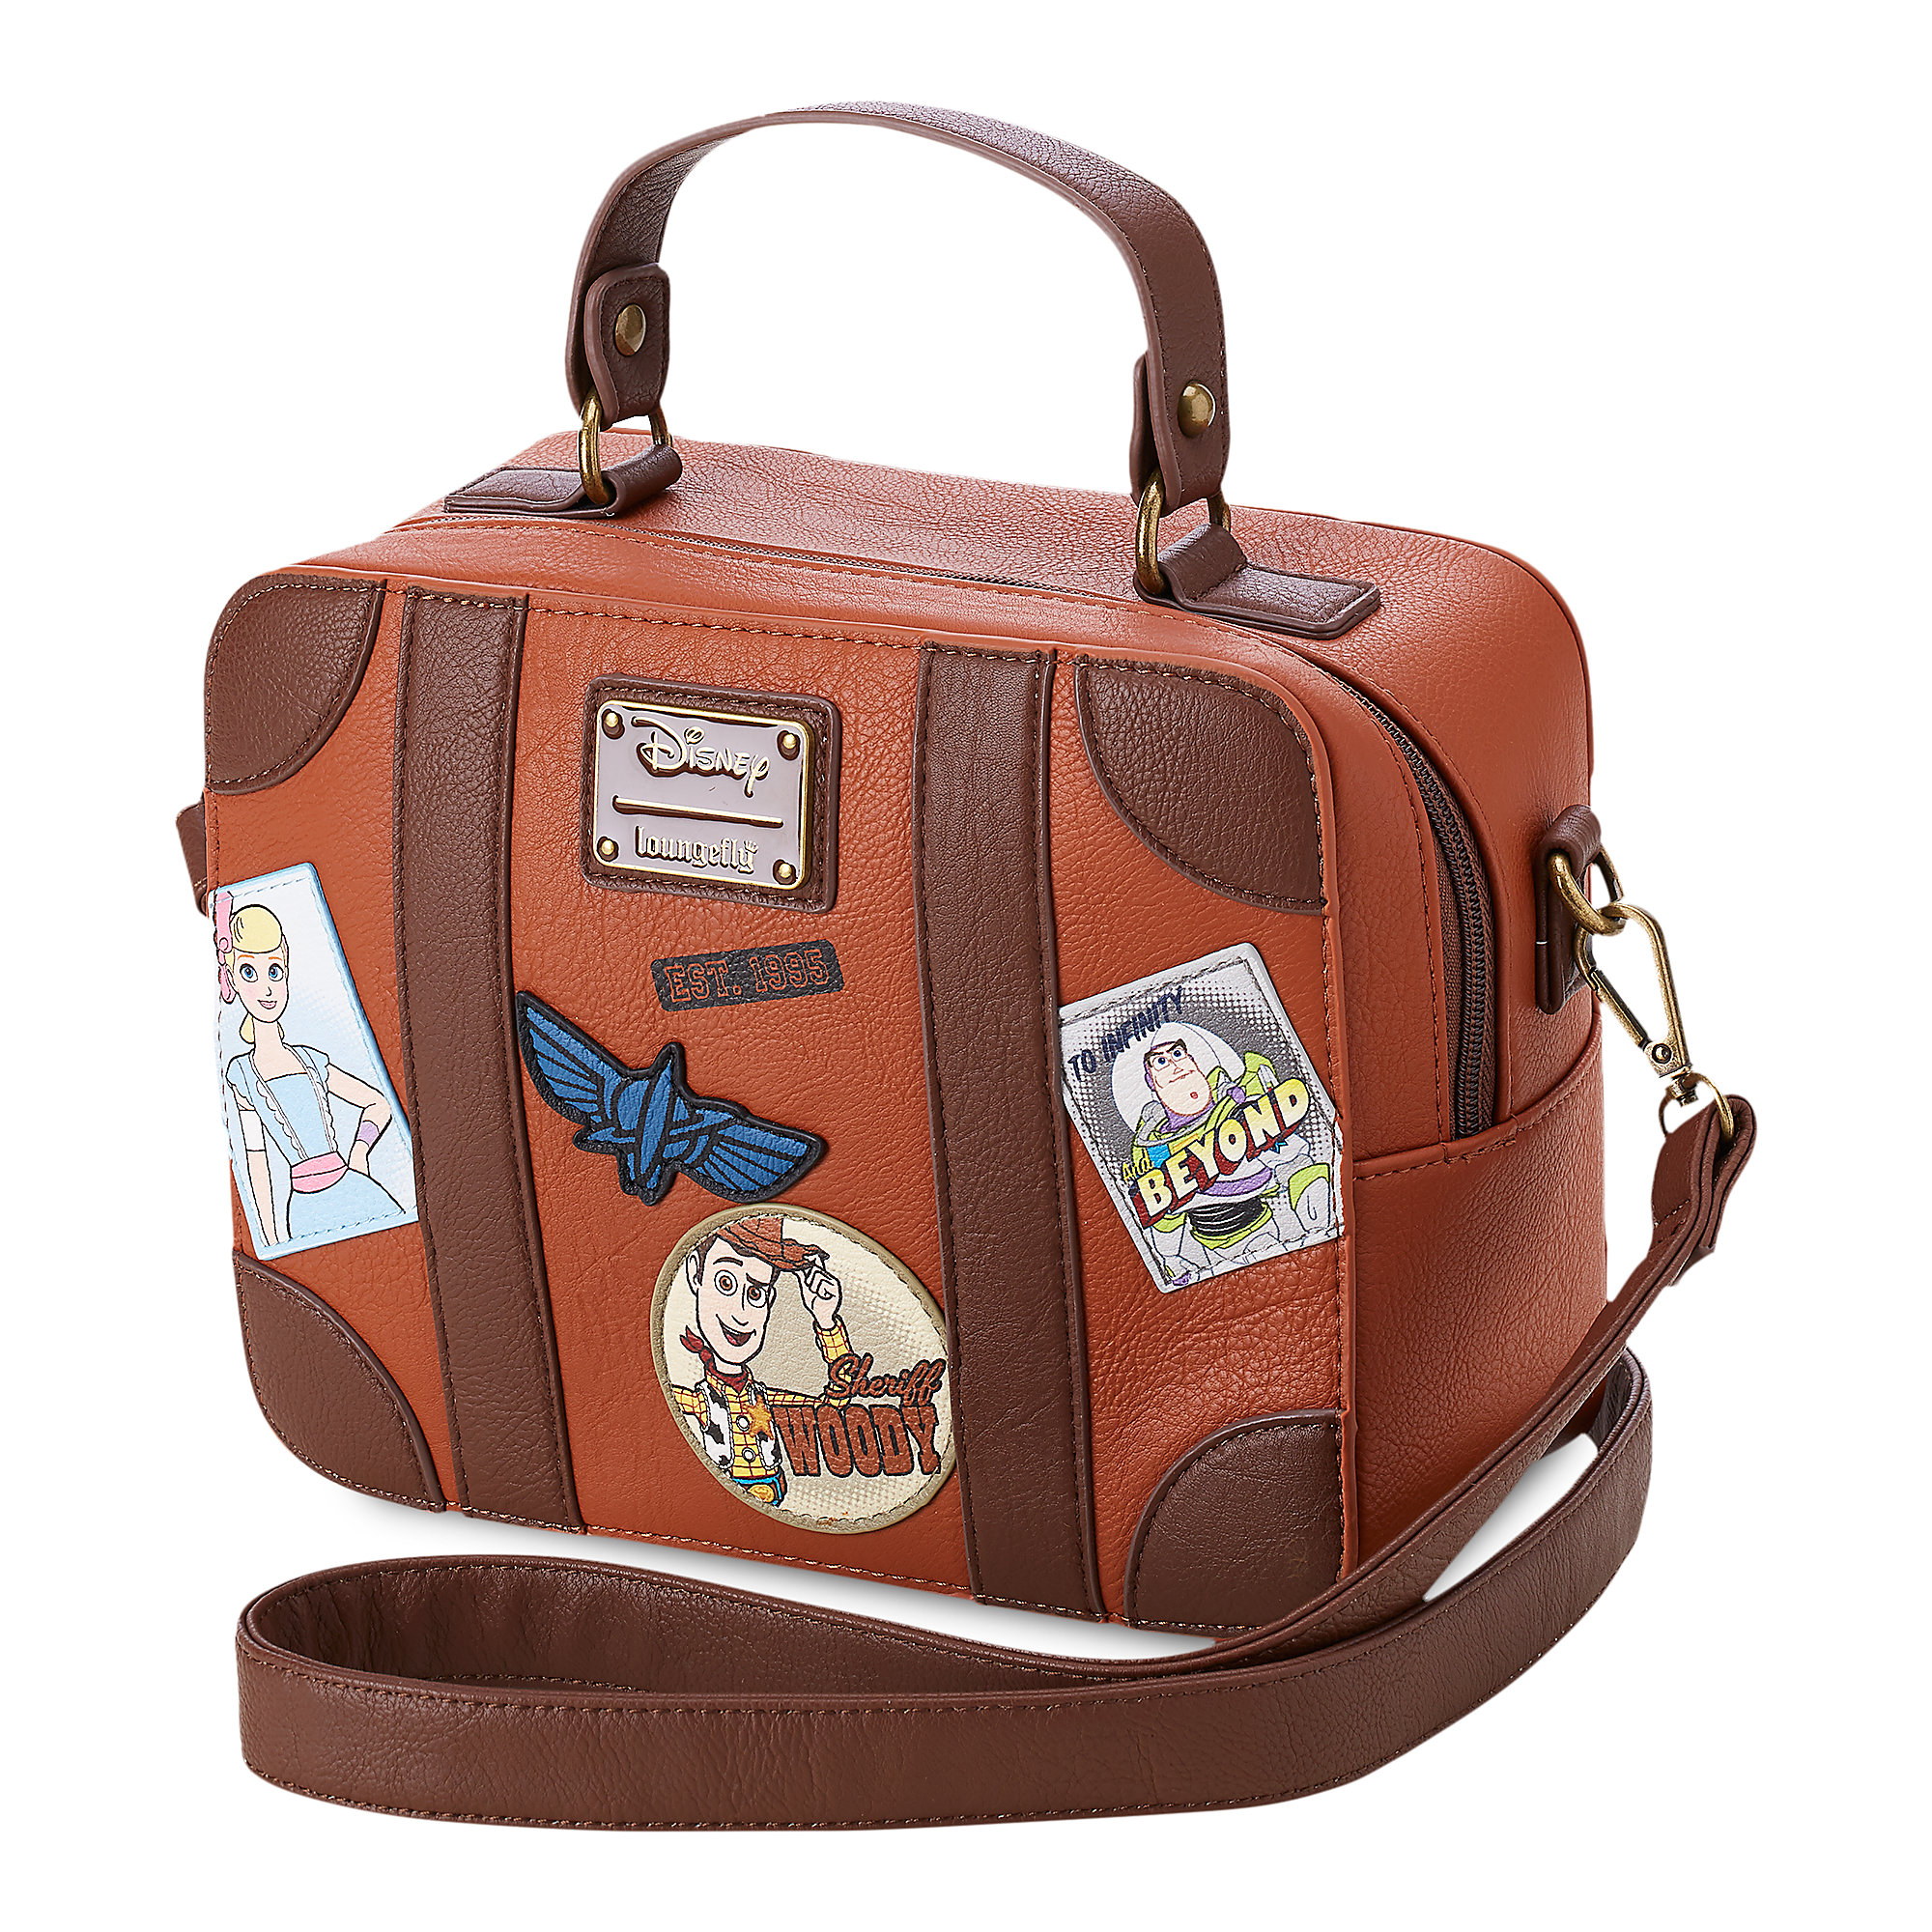 Toy Story 4 Crossbody Bag by Loungefly